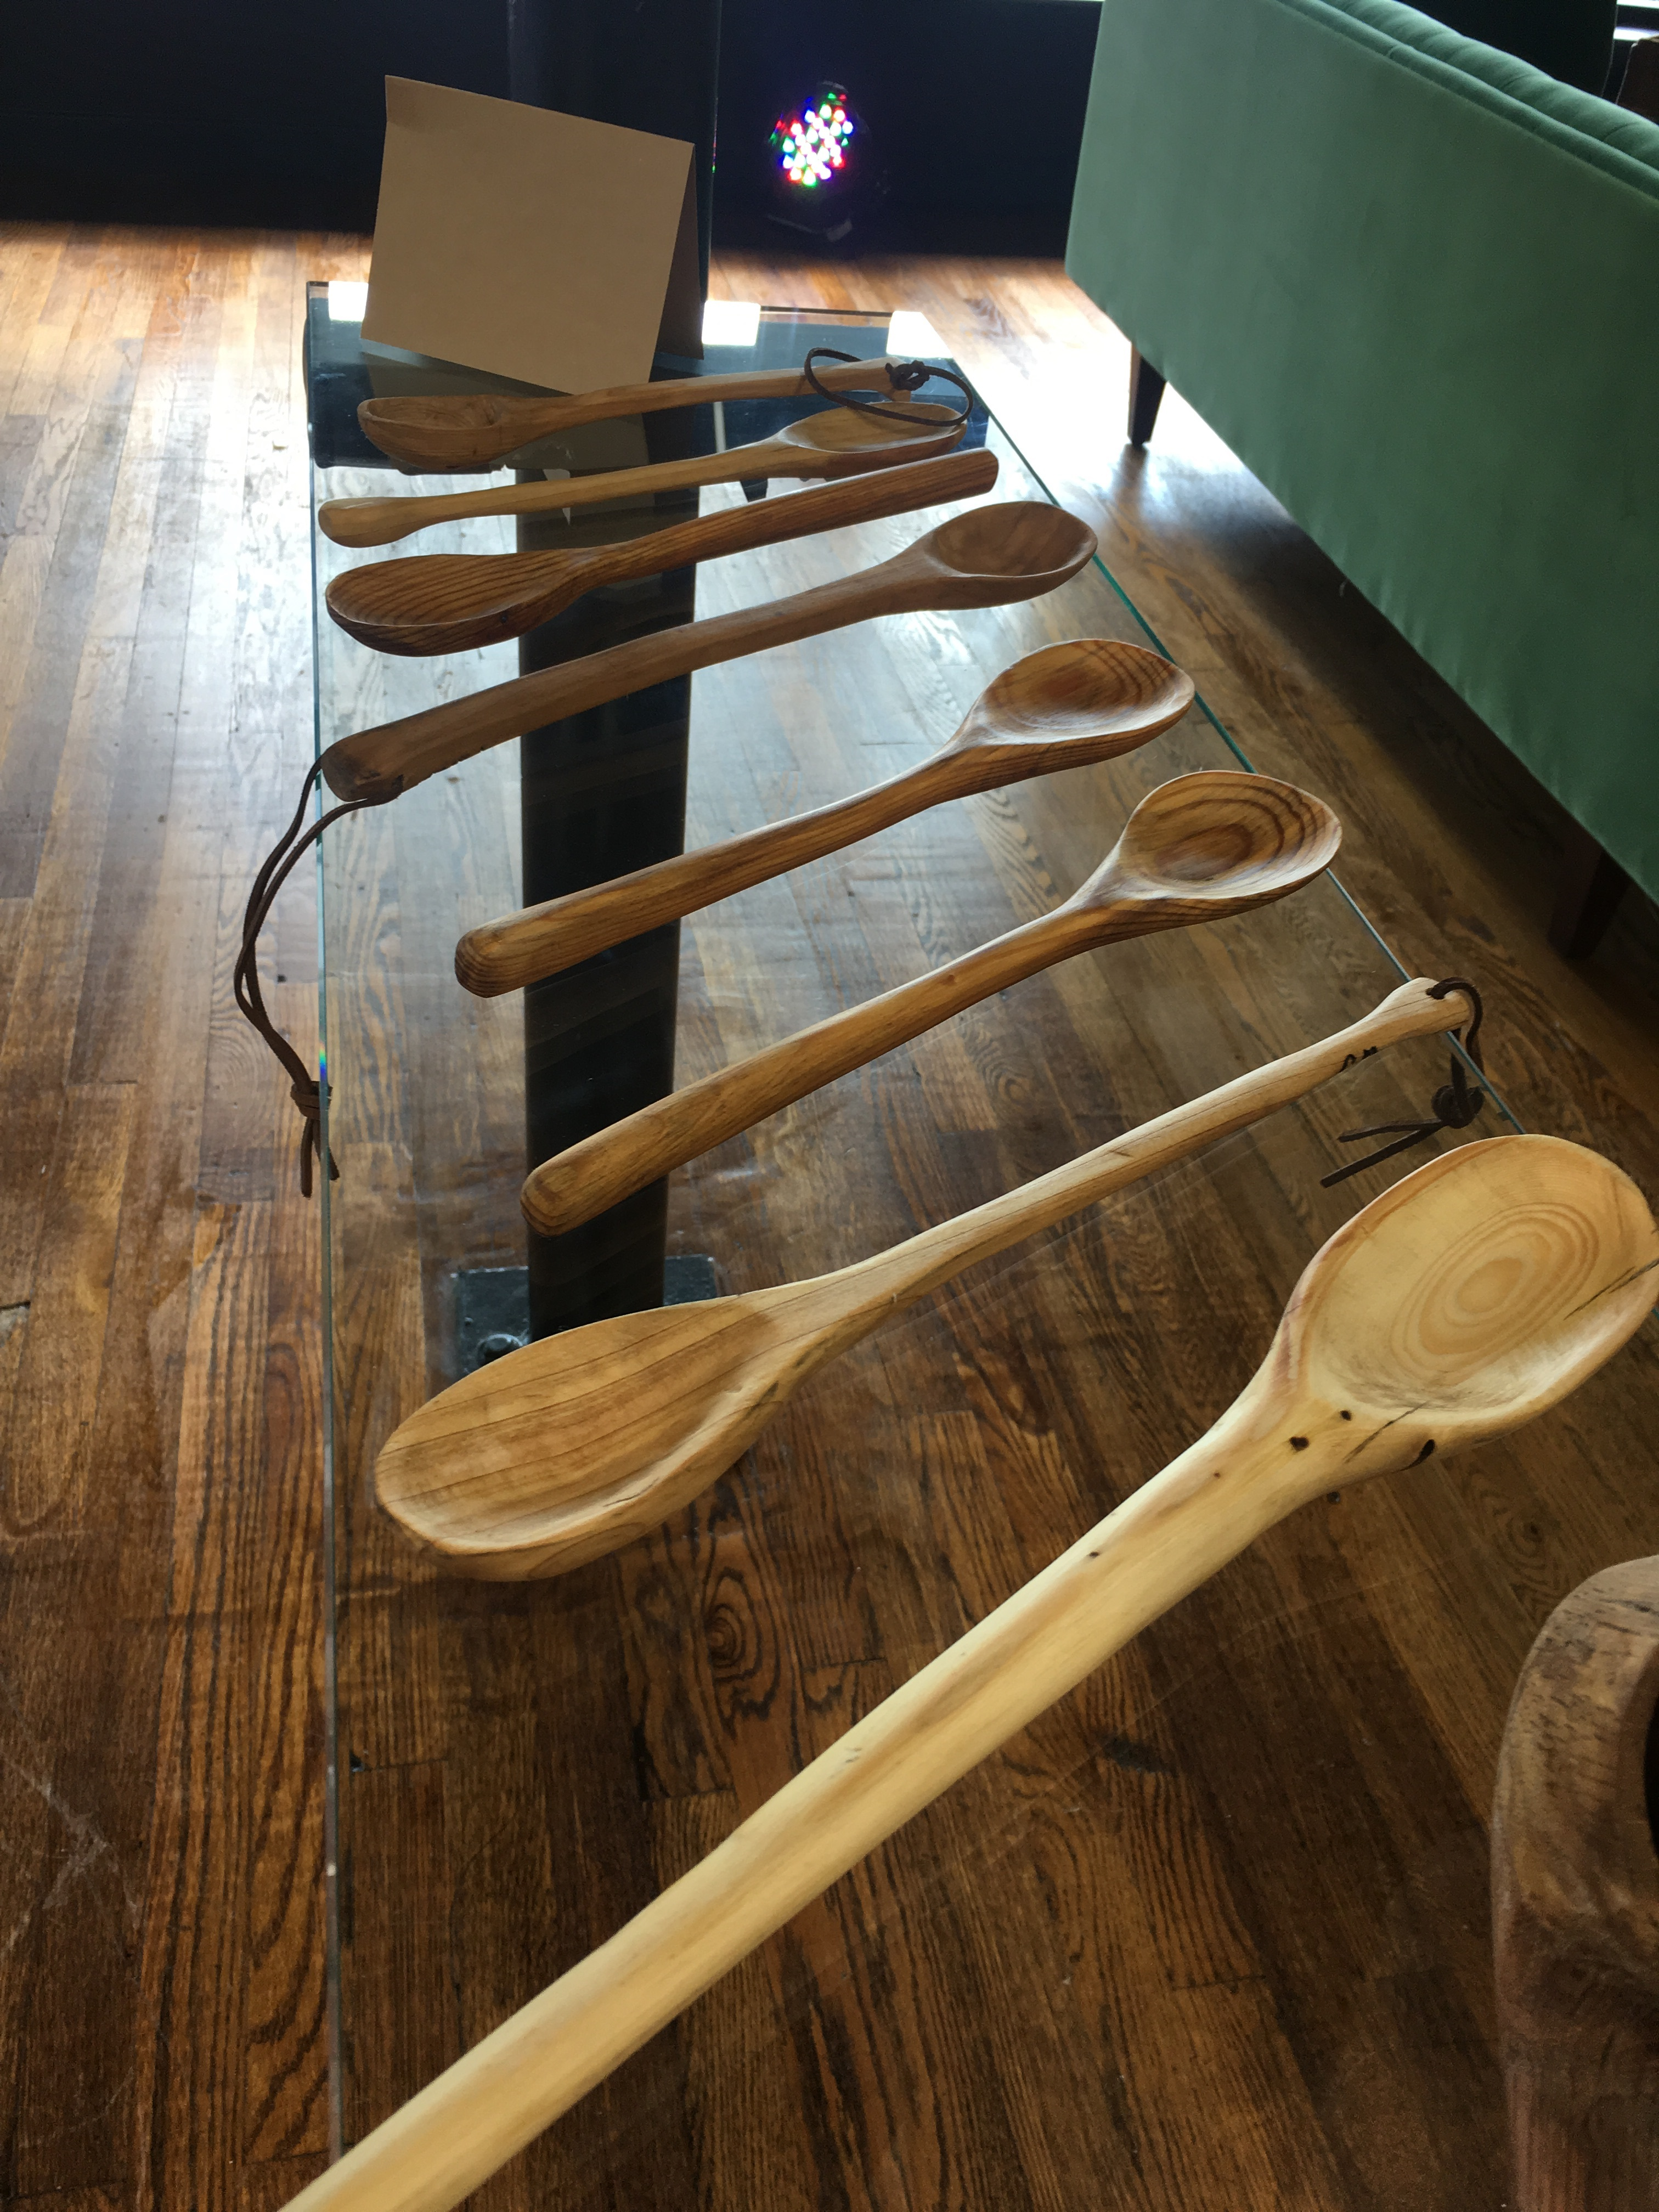 Handmade wooden spoons; Photo courtesy: Monarch Publicity